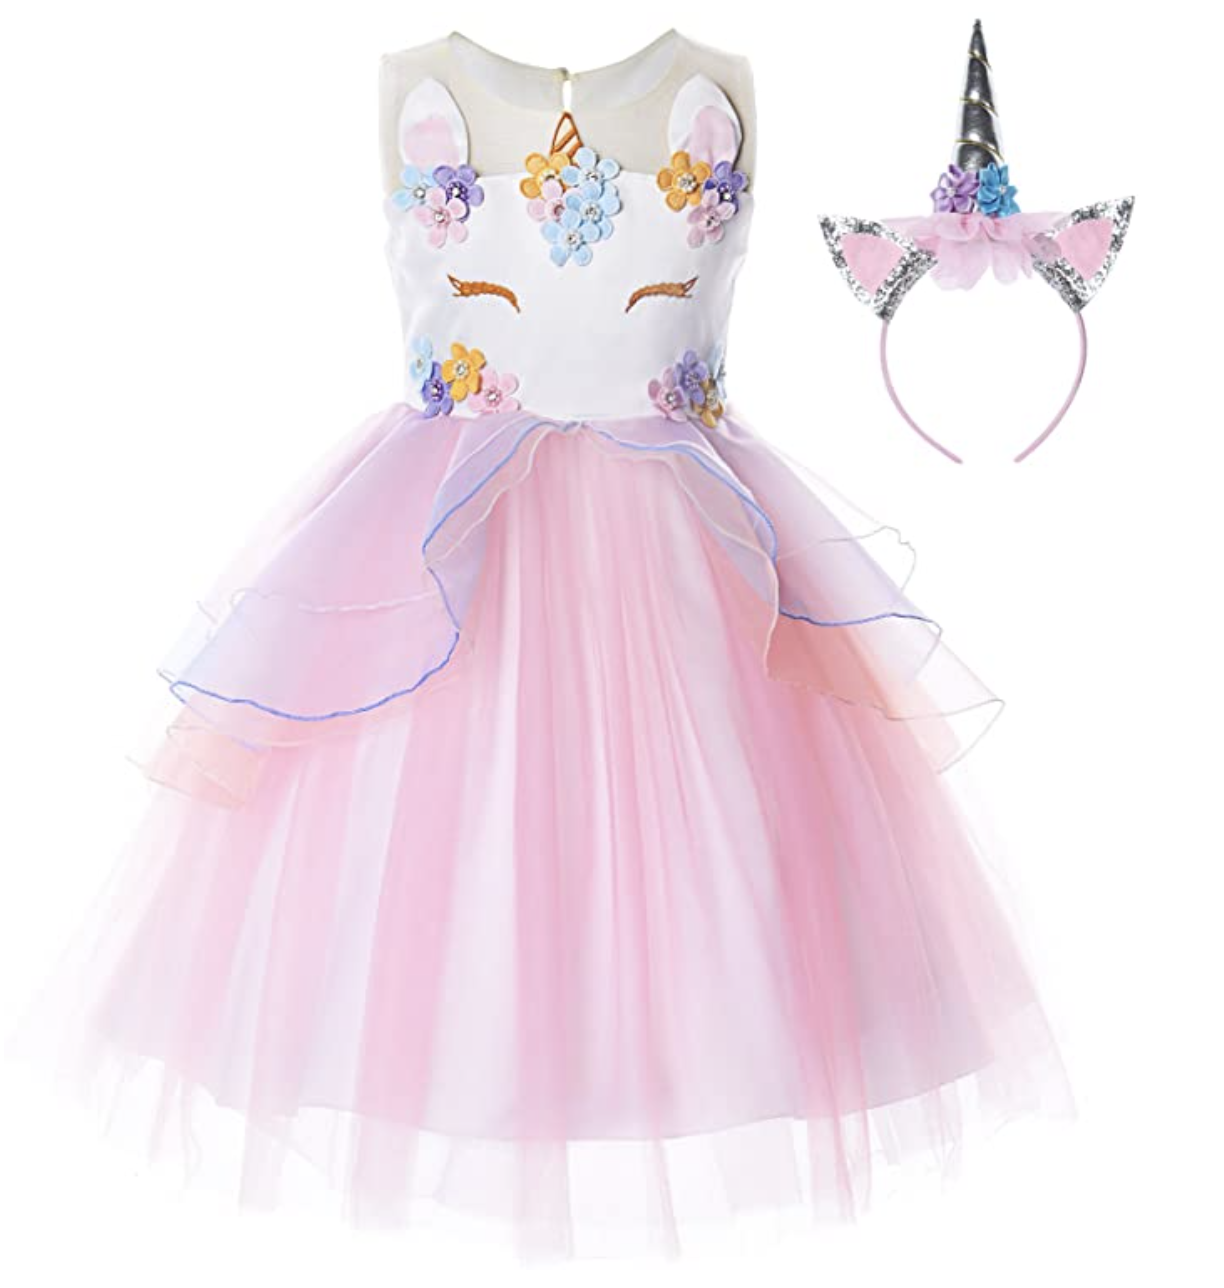 unicorn-gifts-for-girls-party-dress